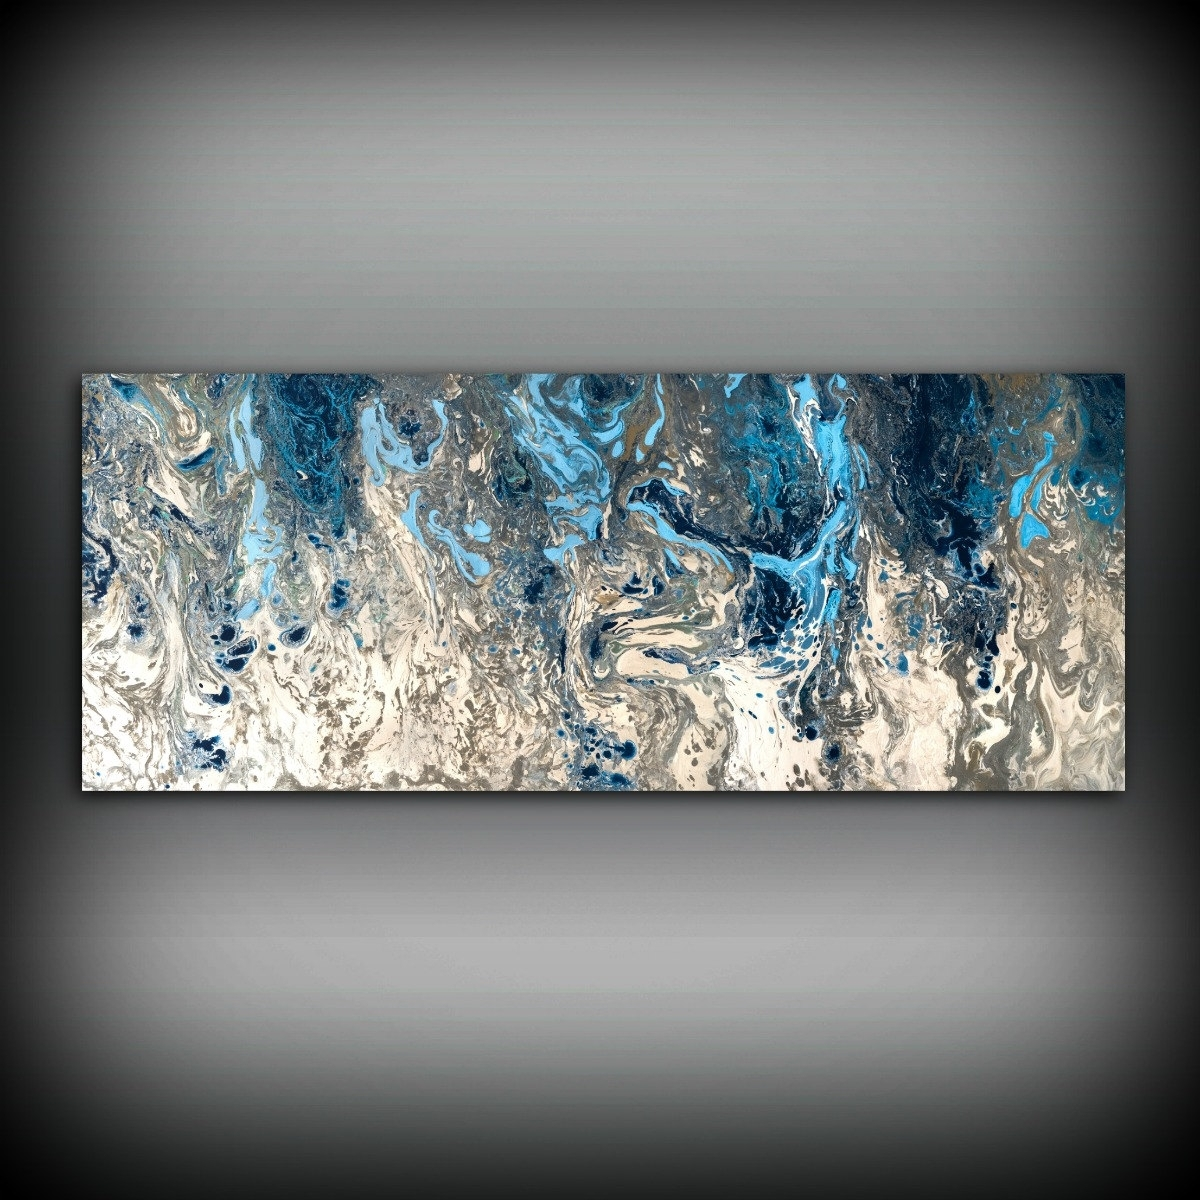 Original Painting, Navy Blue And Gray Painting Abstract Painting Pertaining To Most Recent Abstract Art Wall Hangings (View 14 of 20)